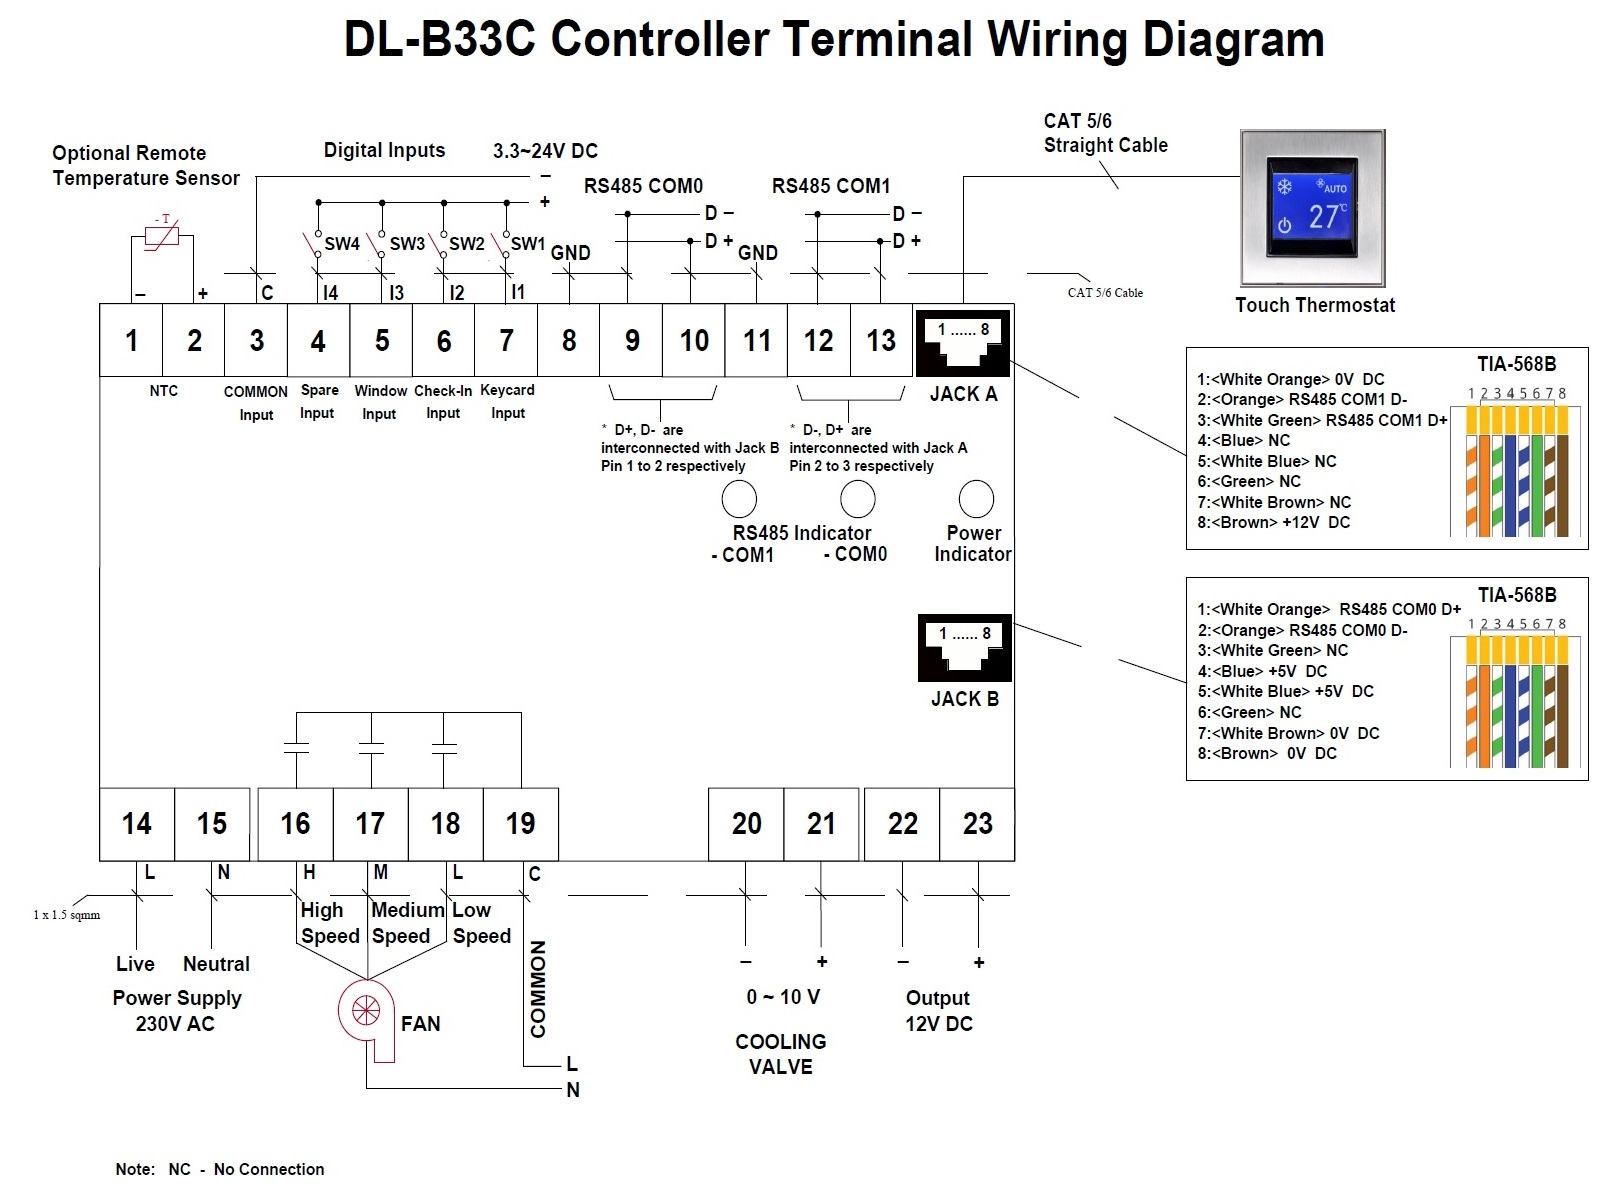 DL-B33C Wiring Diagram